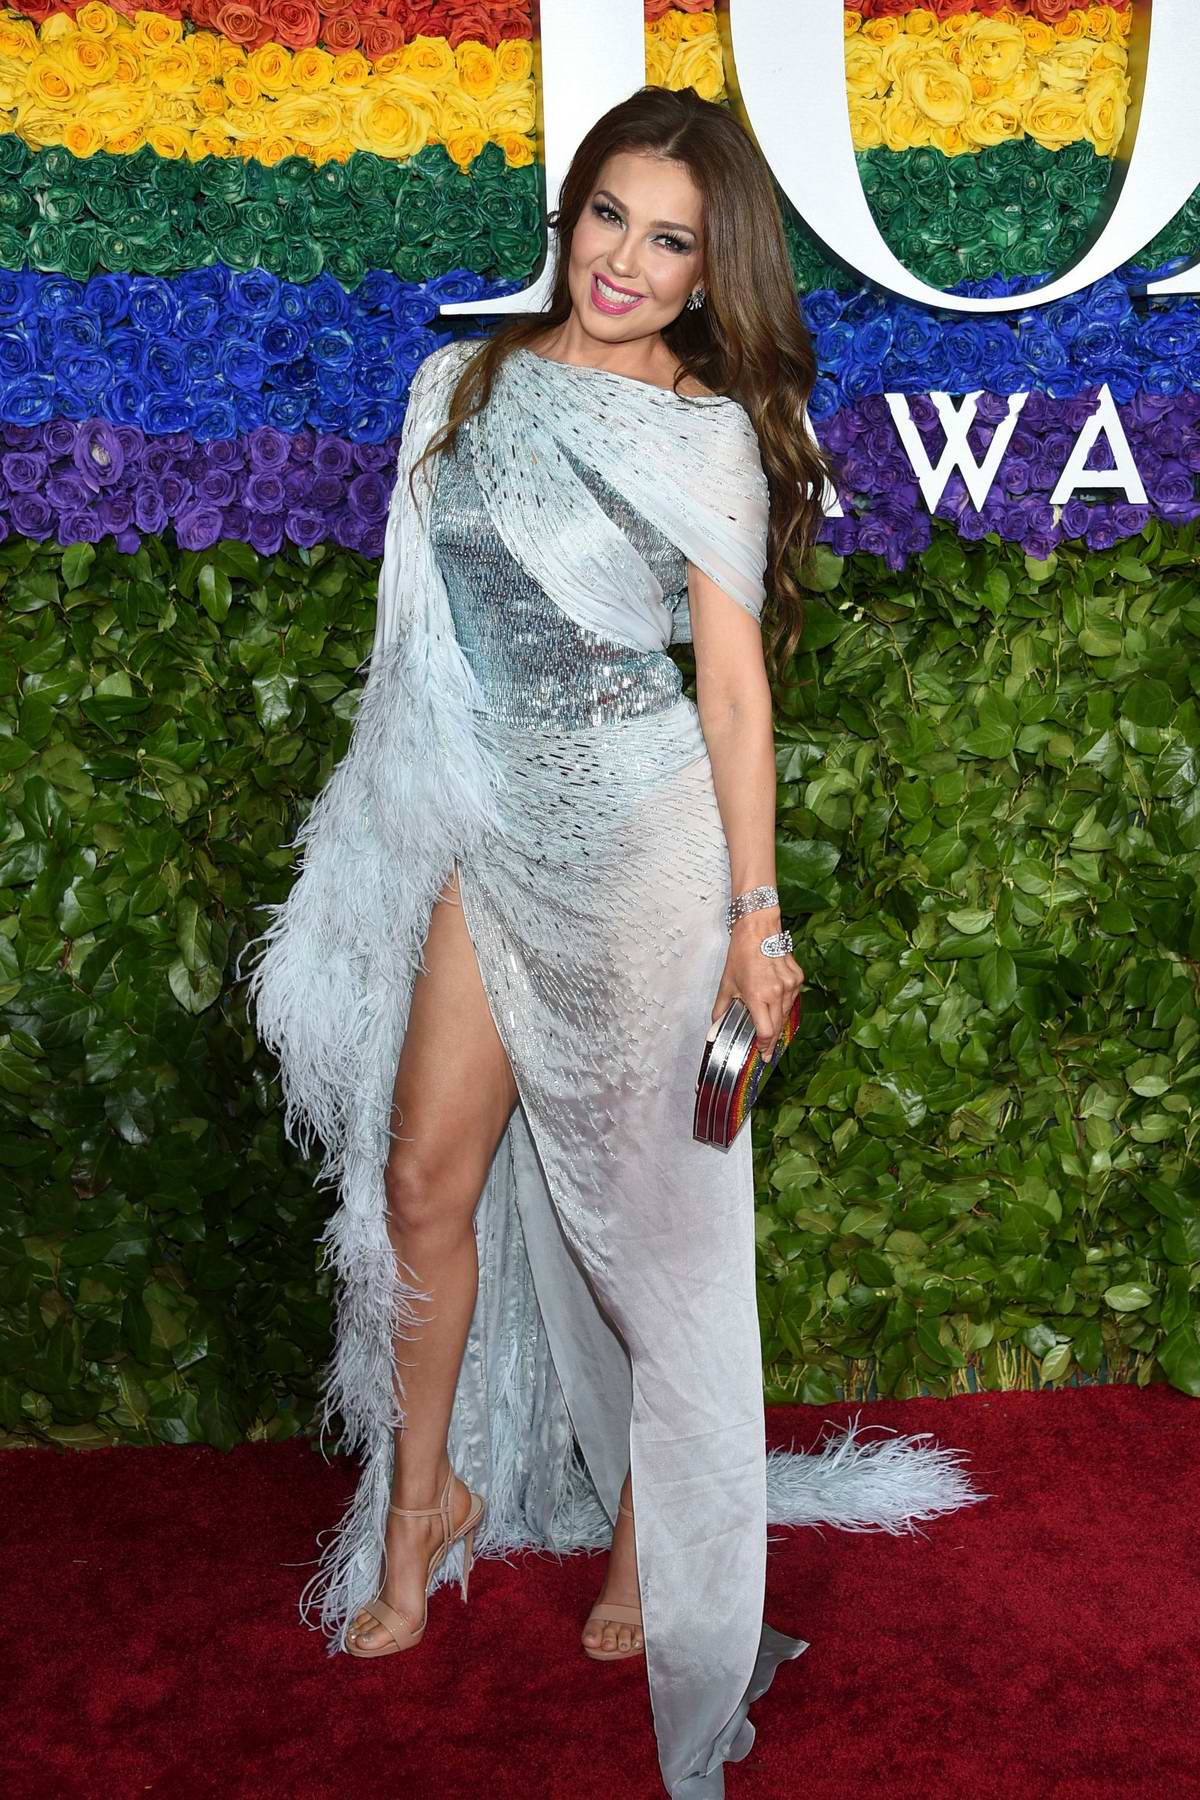 Thalia attends the 73rd annual Tony Awards at Radio City Music Hall in New York City